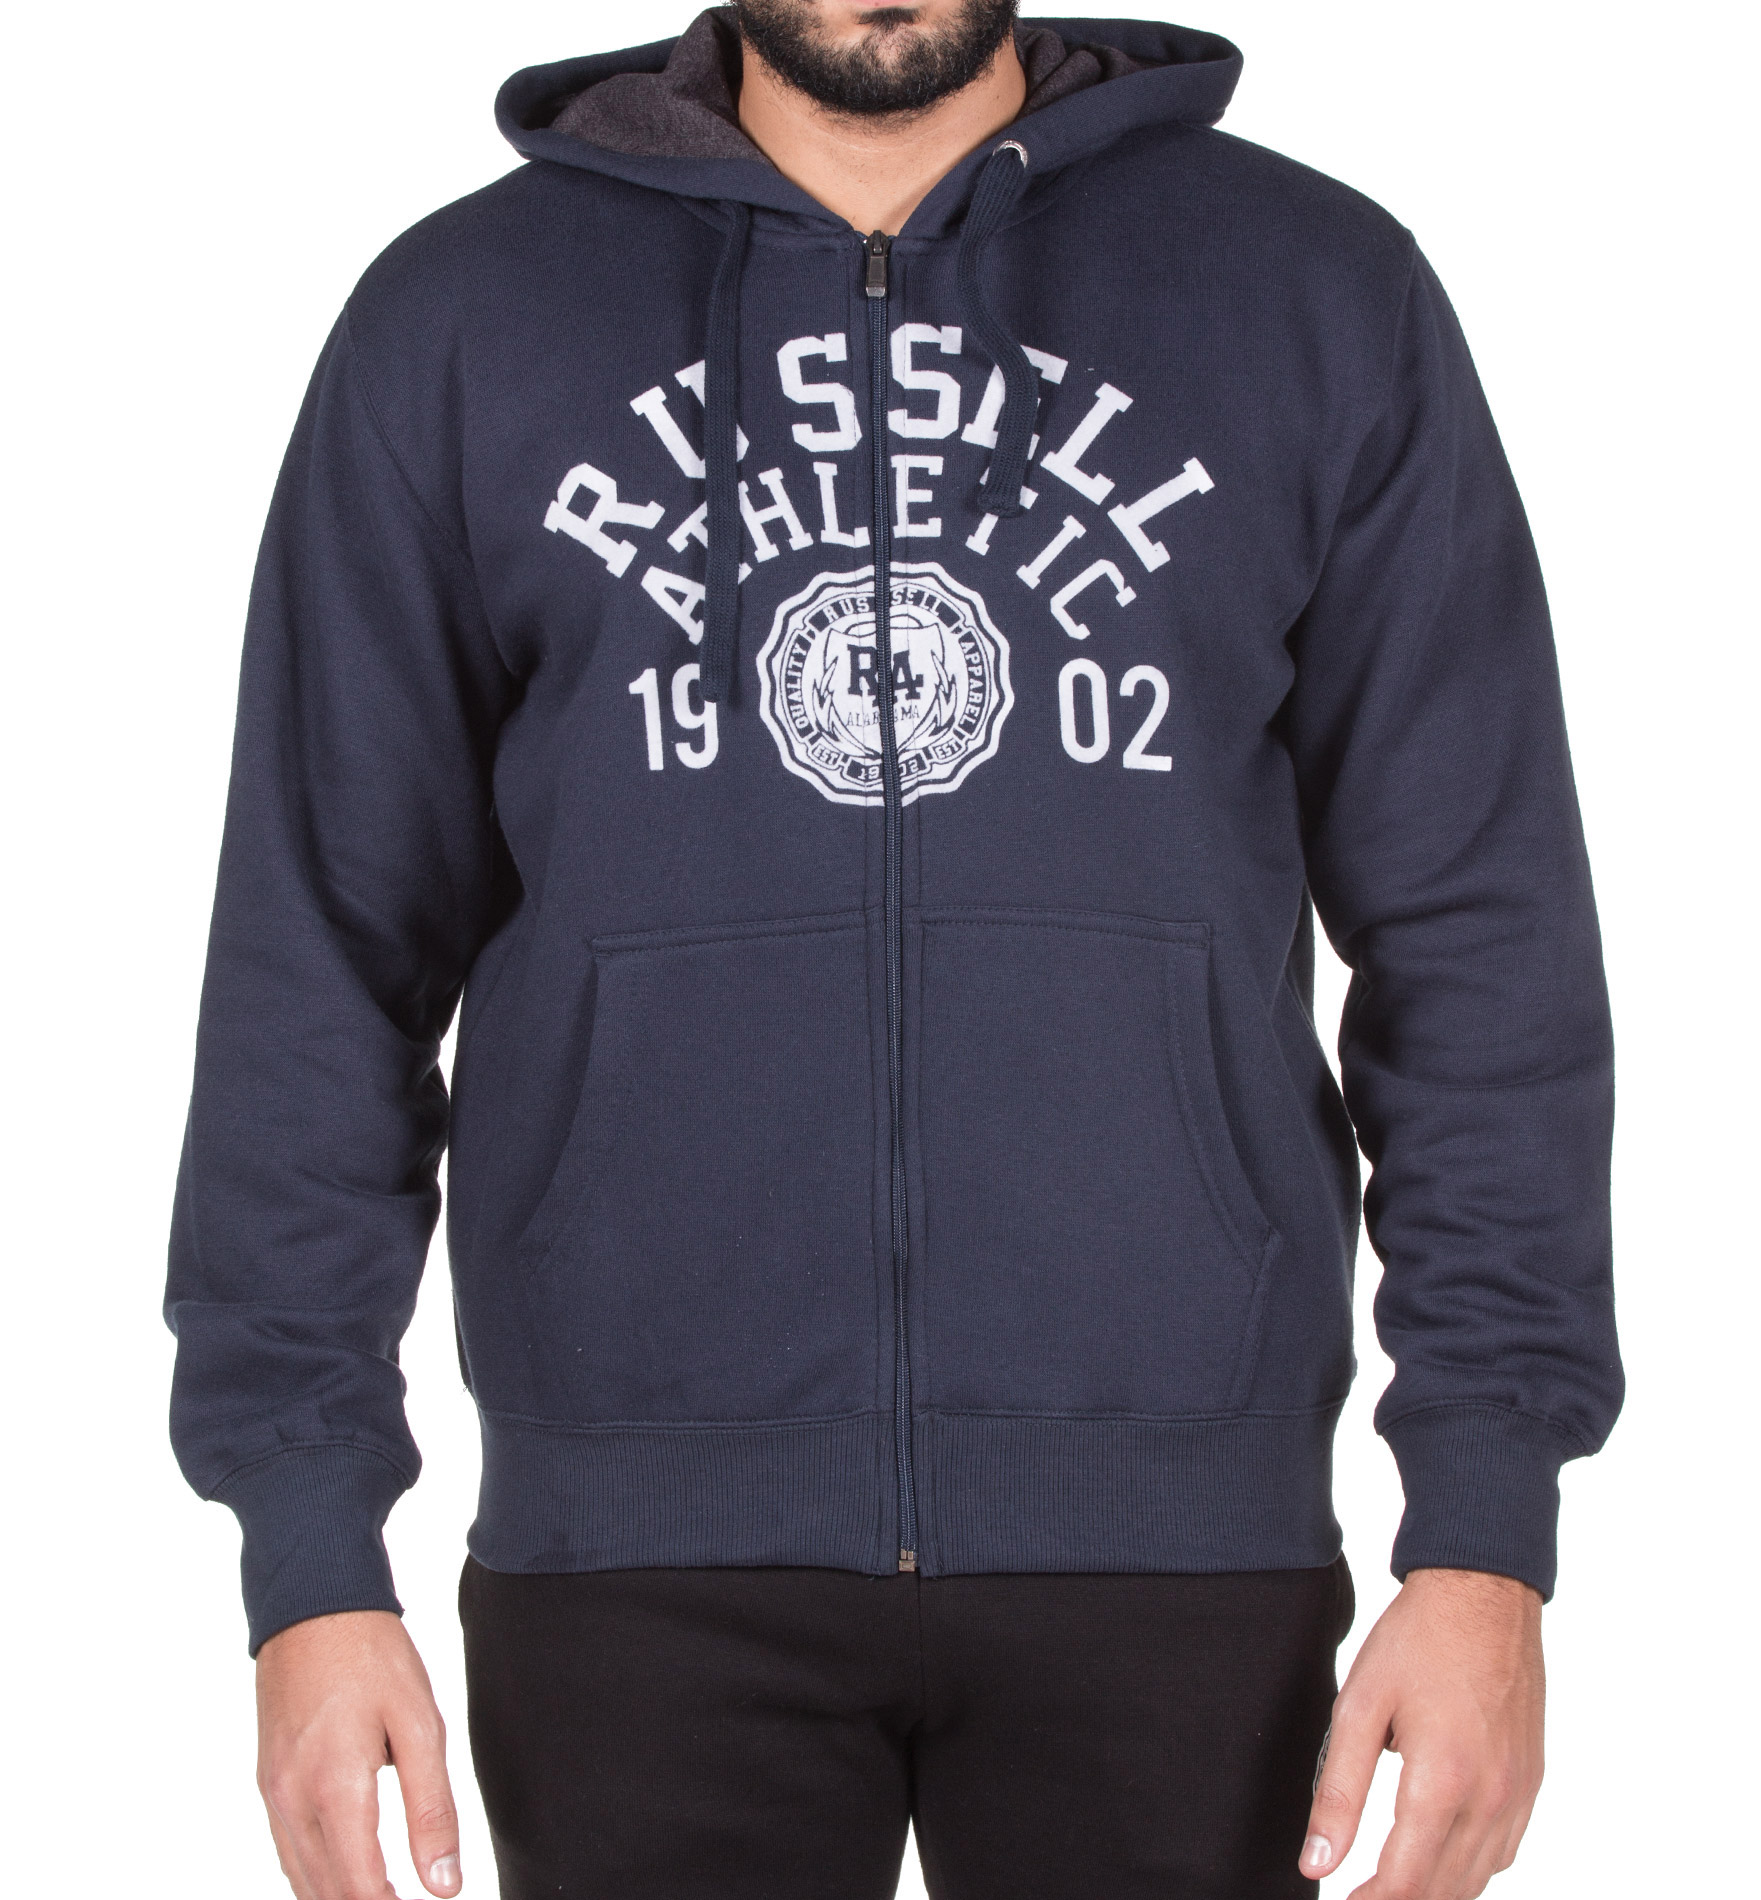 RUSSELL ATHLETIC ZIP THROUGH HOODY WITH ROSETTE FLOCK PRINT A7-703-2-190 Μπλε